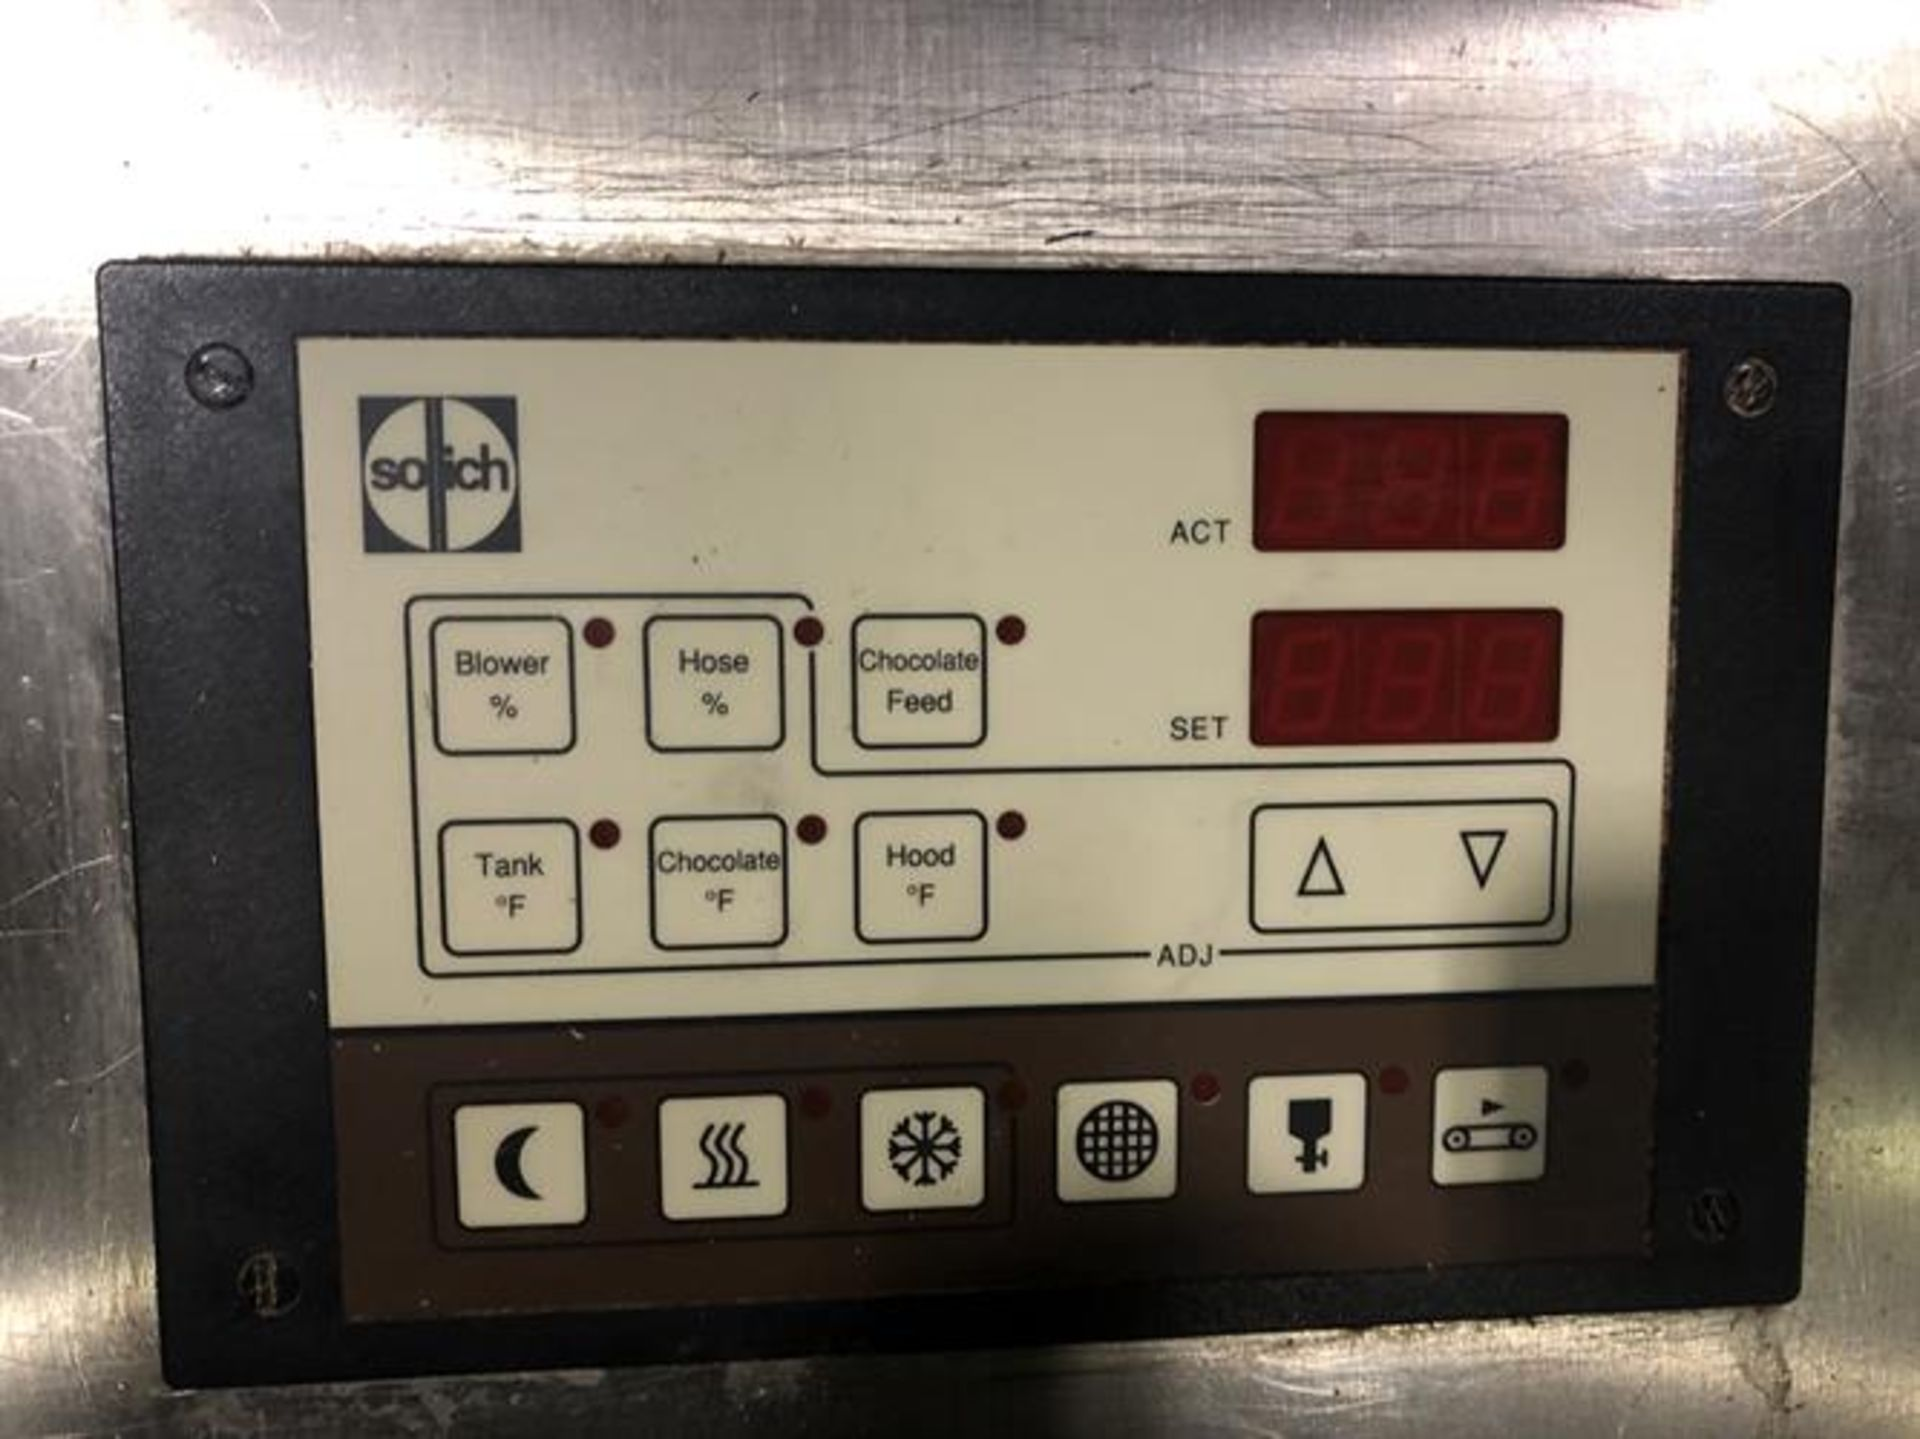 Sollich Model TF 100 Tempering Unit - Serial number 2682 - Built new in 1998 - 80kg/hour - Image 2 of 6